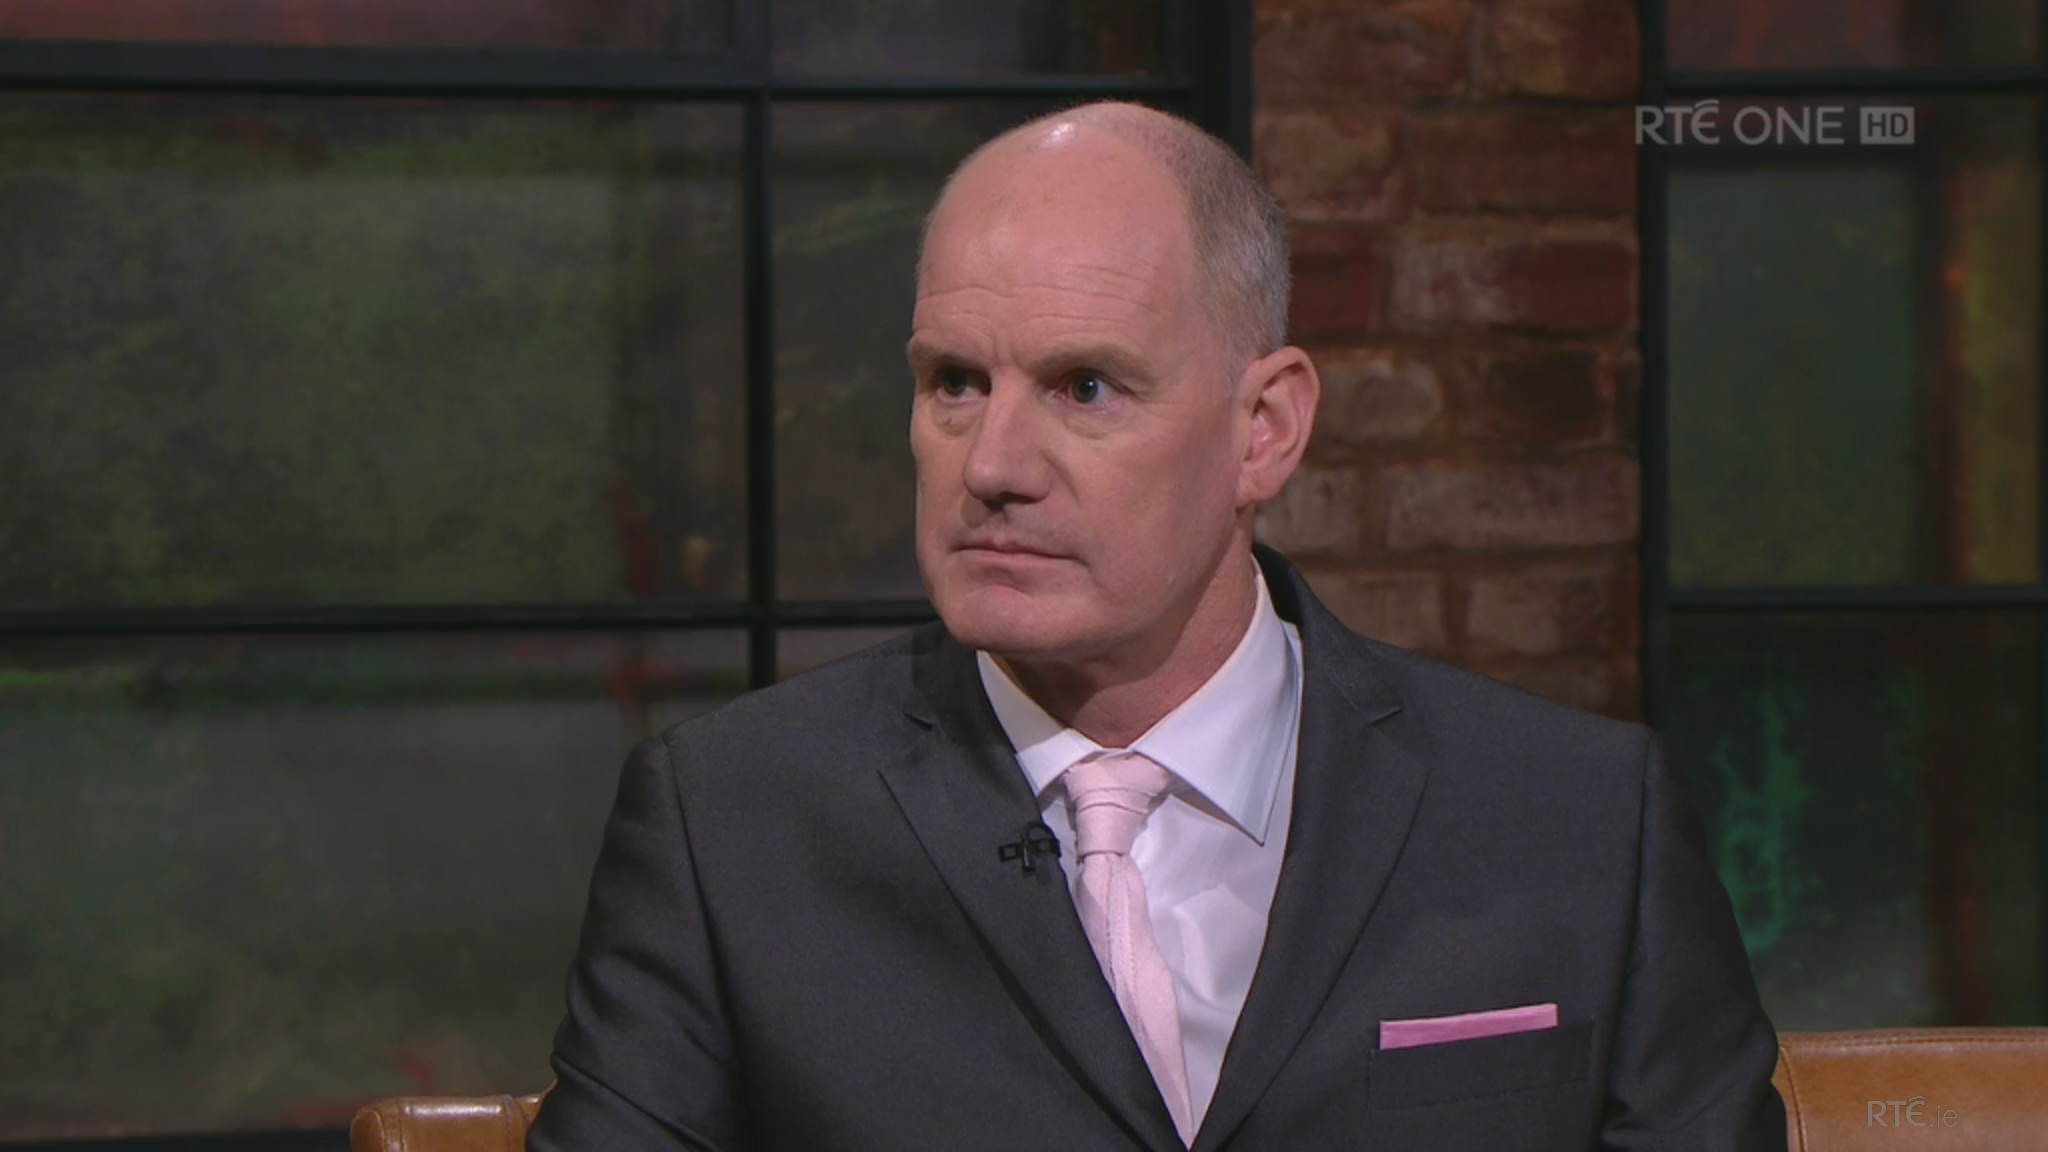 Jimmy Norman of Aoibheann's Pink Tie on the RTE Late Late Show